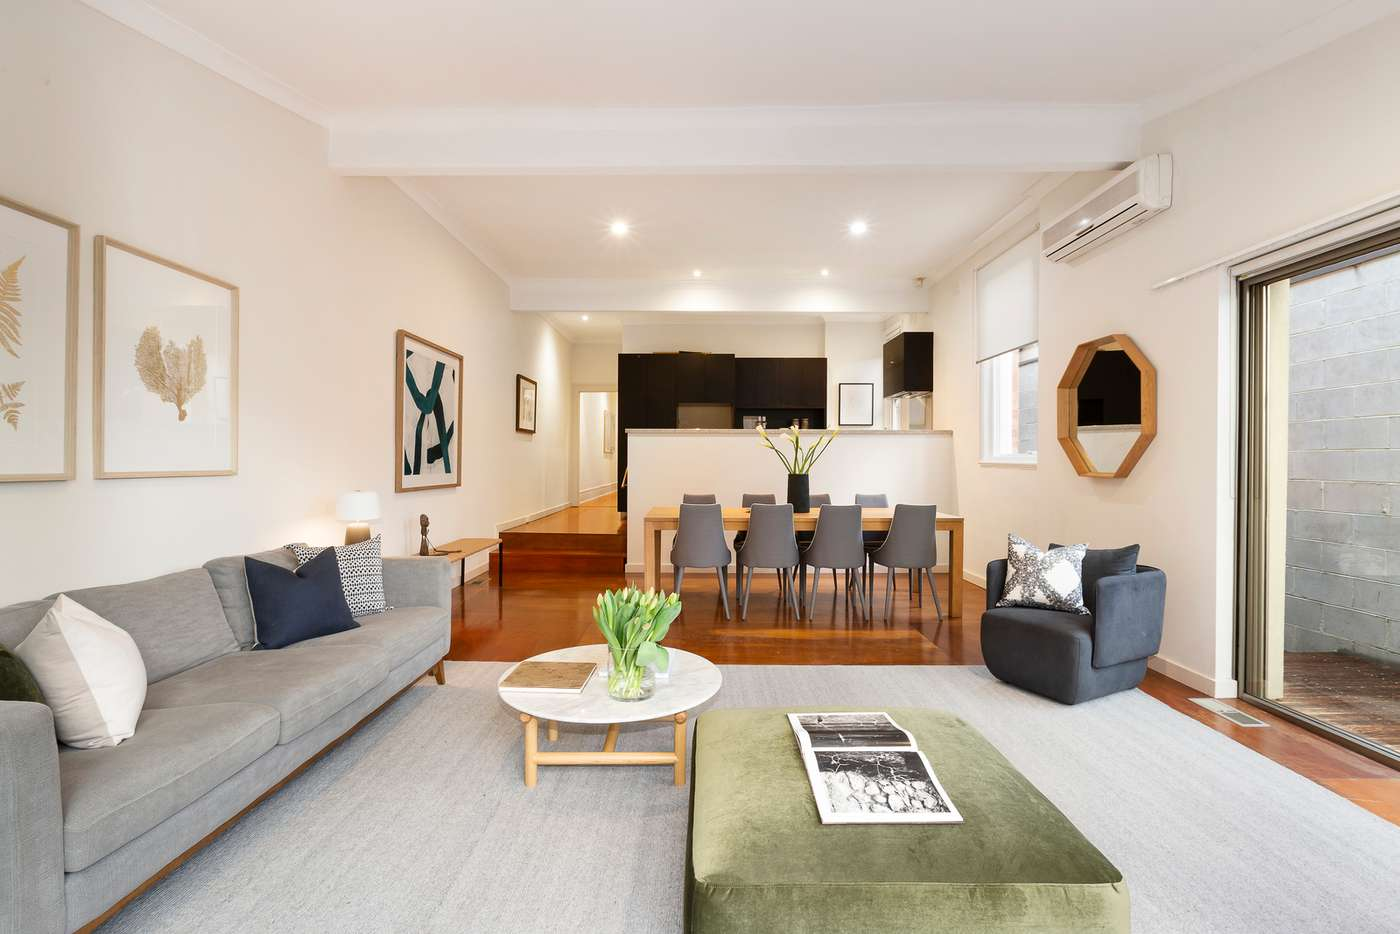 Fifth view of Homely house listing, 12 Balmerino Avenue, Toorak VIC 3142